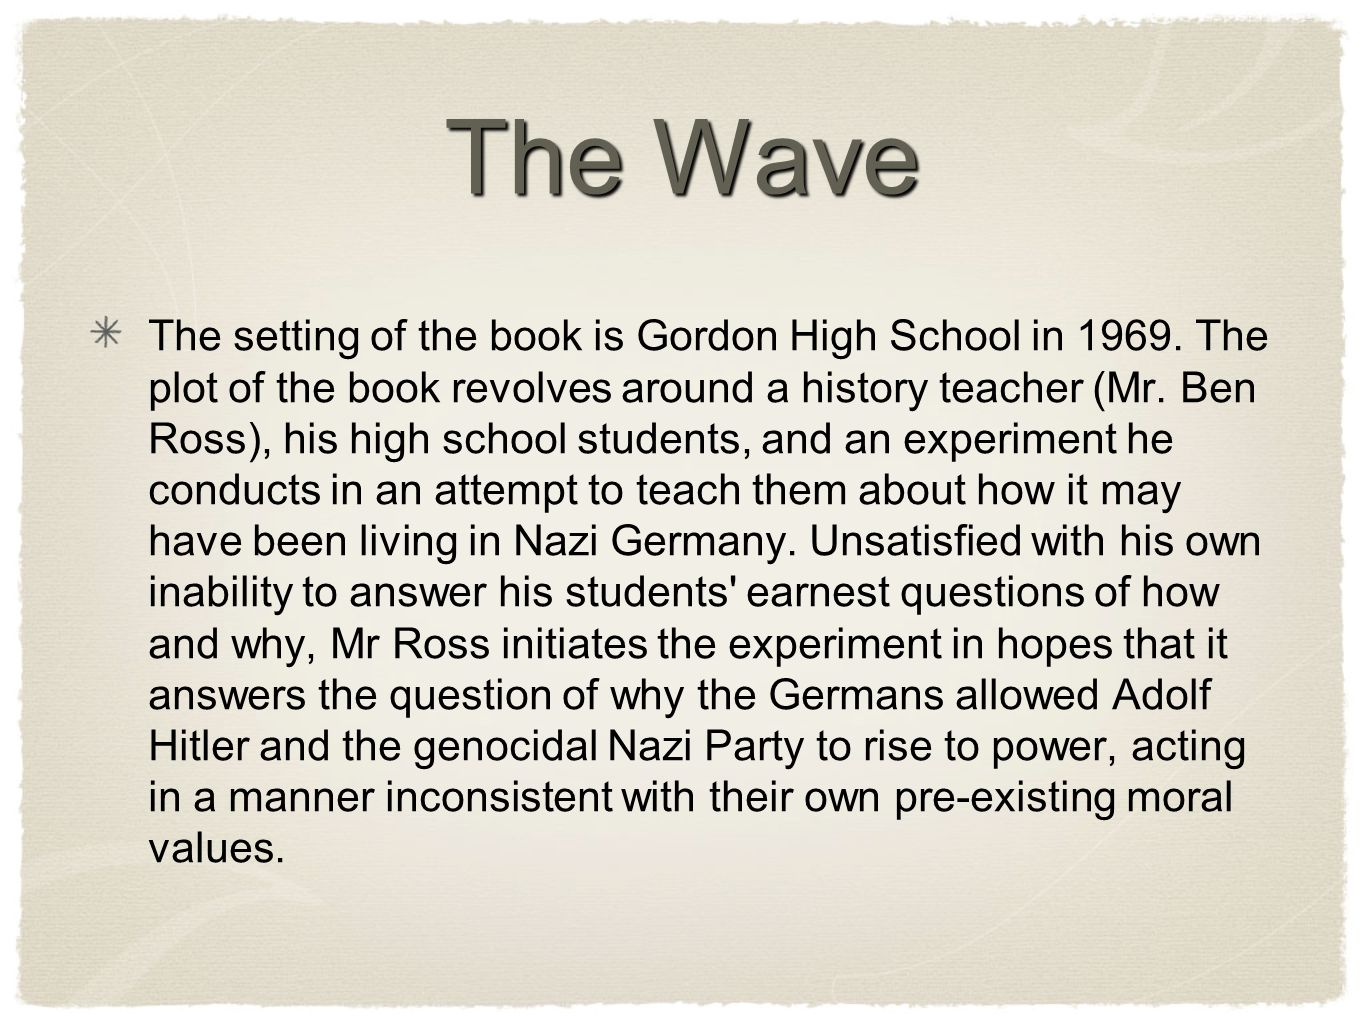 The Wave The setting of the book is Gordon High School in 1969. The plot of the book revolves around a history teacher (Mr. Ben Ross), his high school